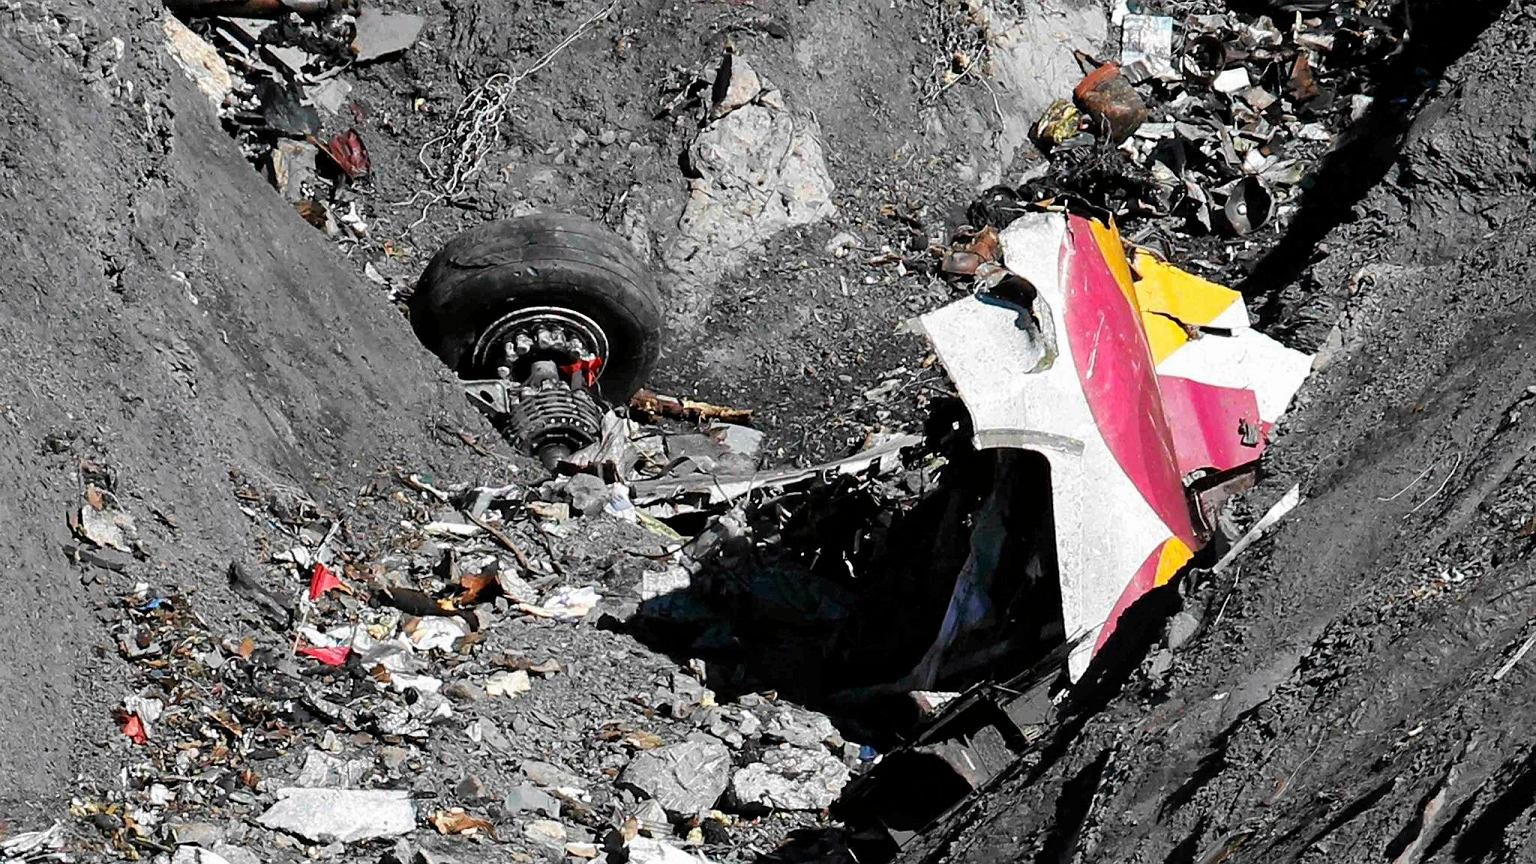 Salvage teams recover decomposed body of Air France jet passenger Air france crash victims photos